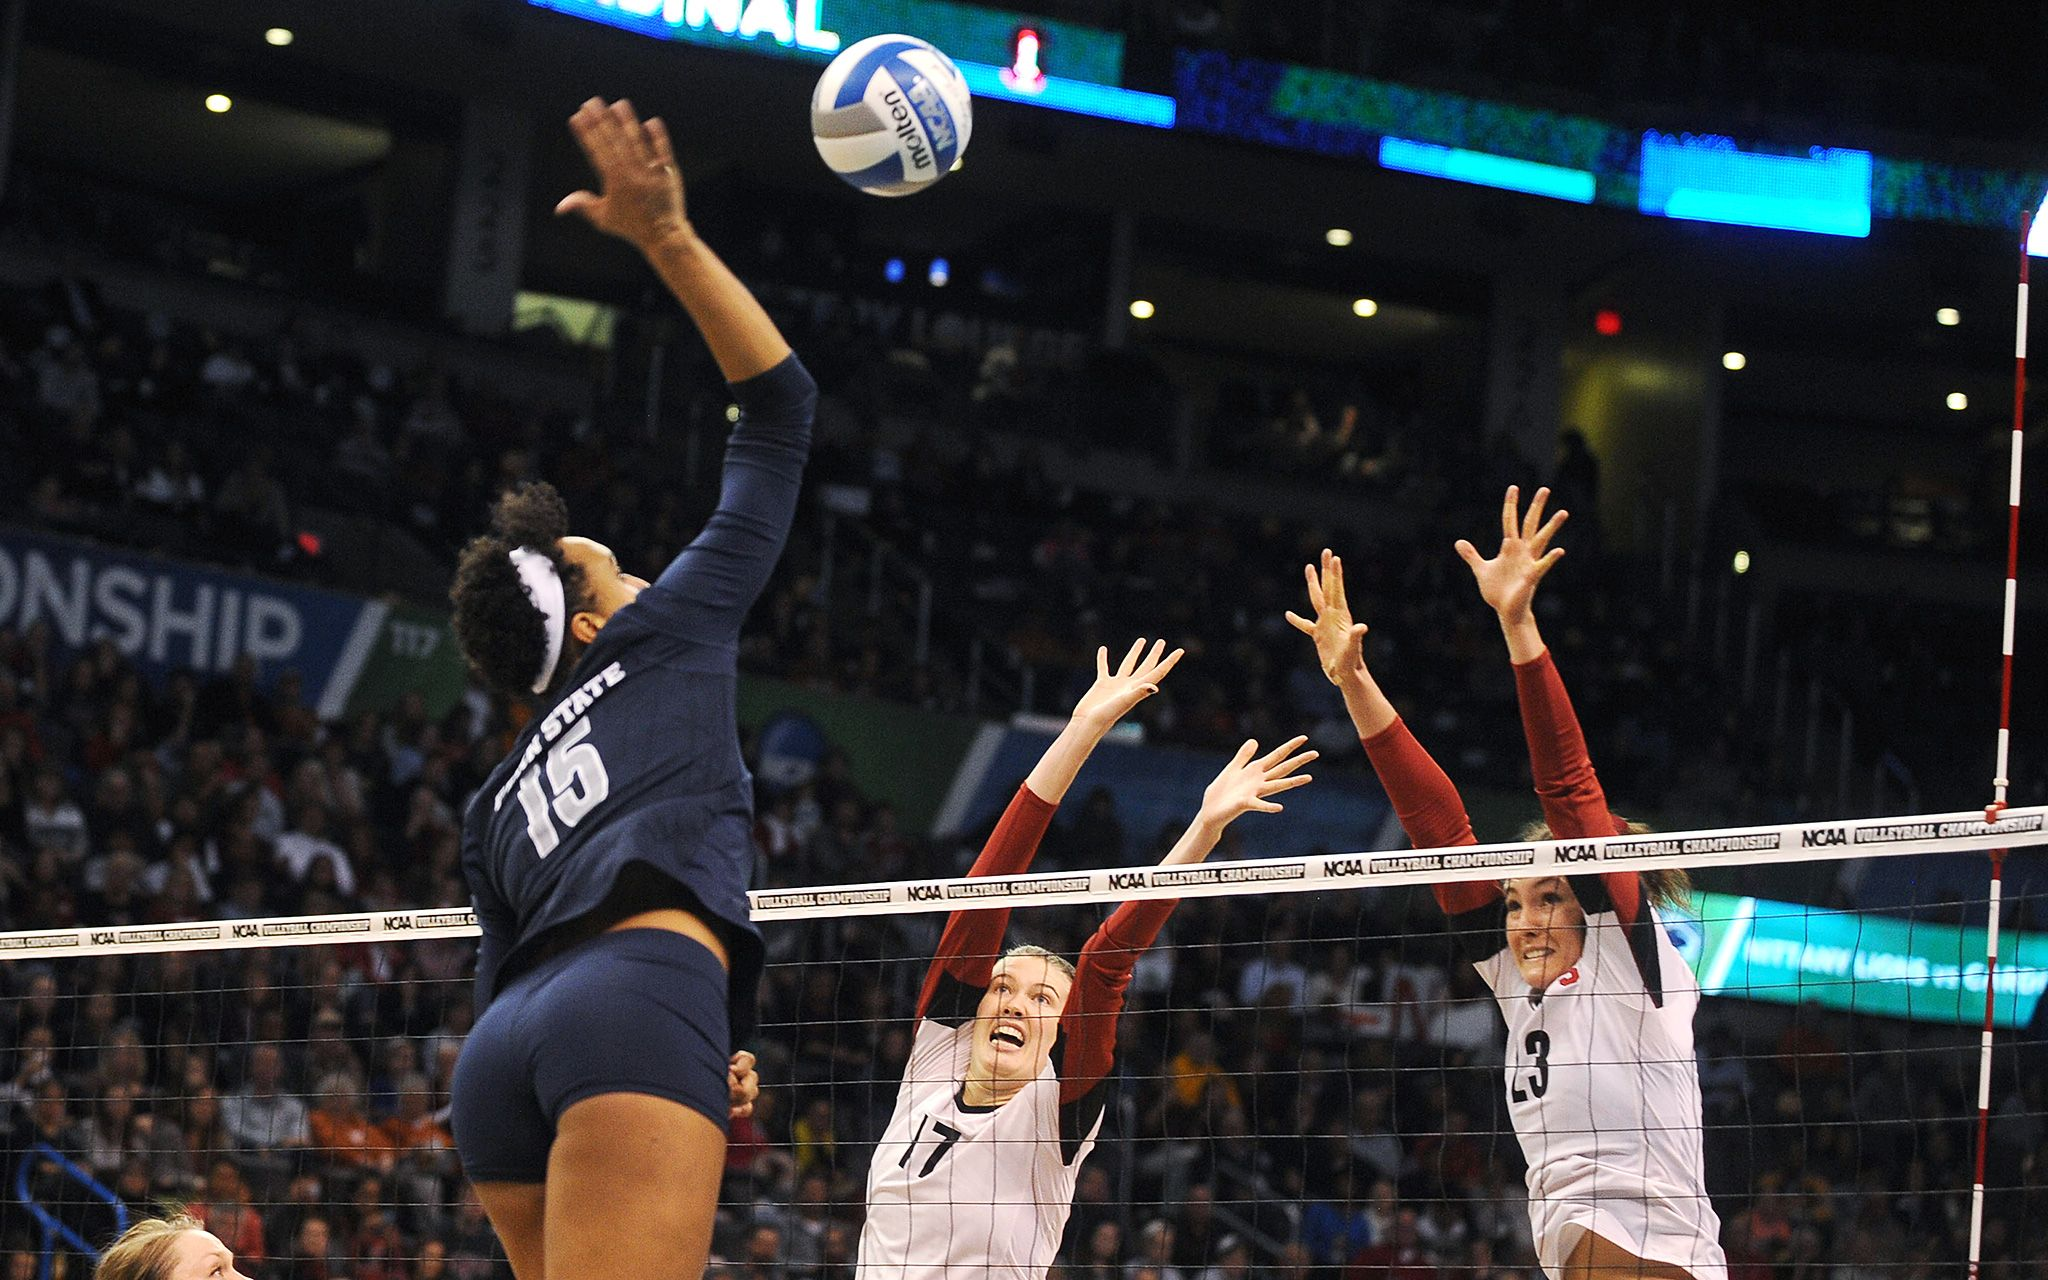 2014 Ncaa Women S Volleyball Championship Women Volleyball Volleyball Photos Sport Volleyball